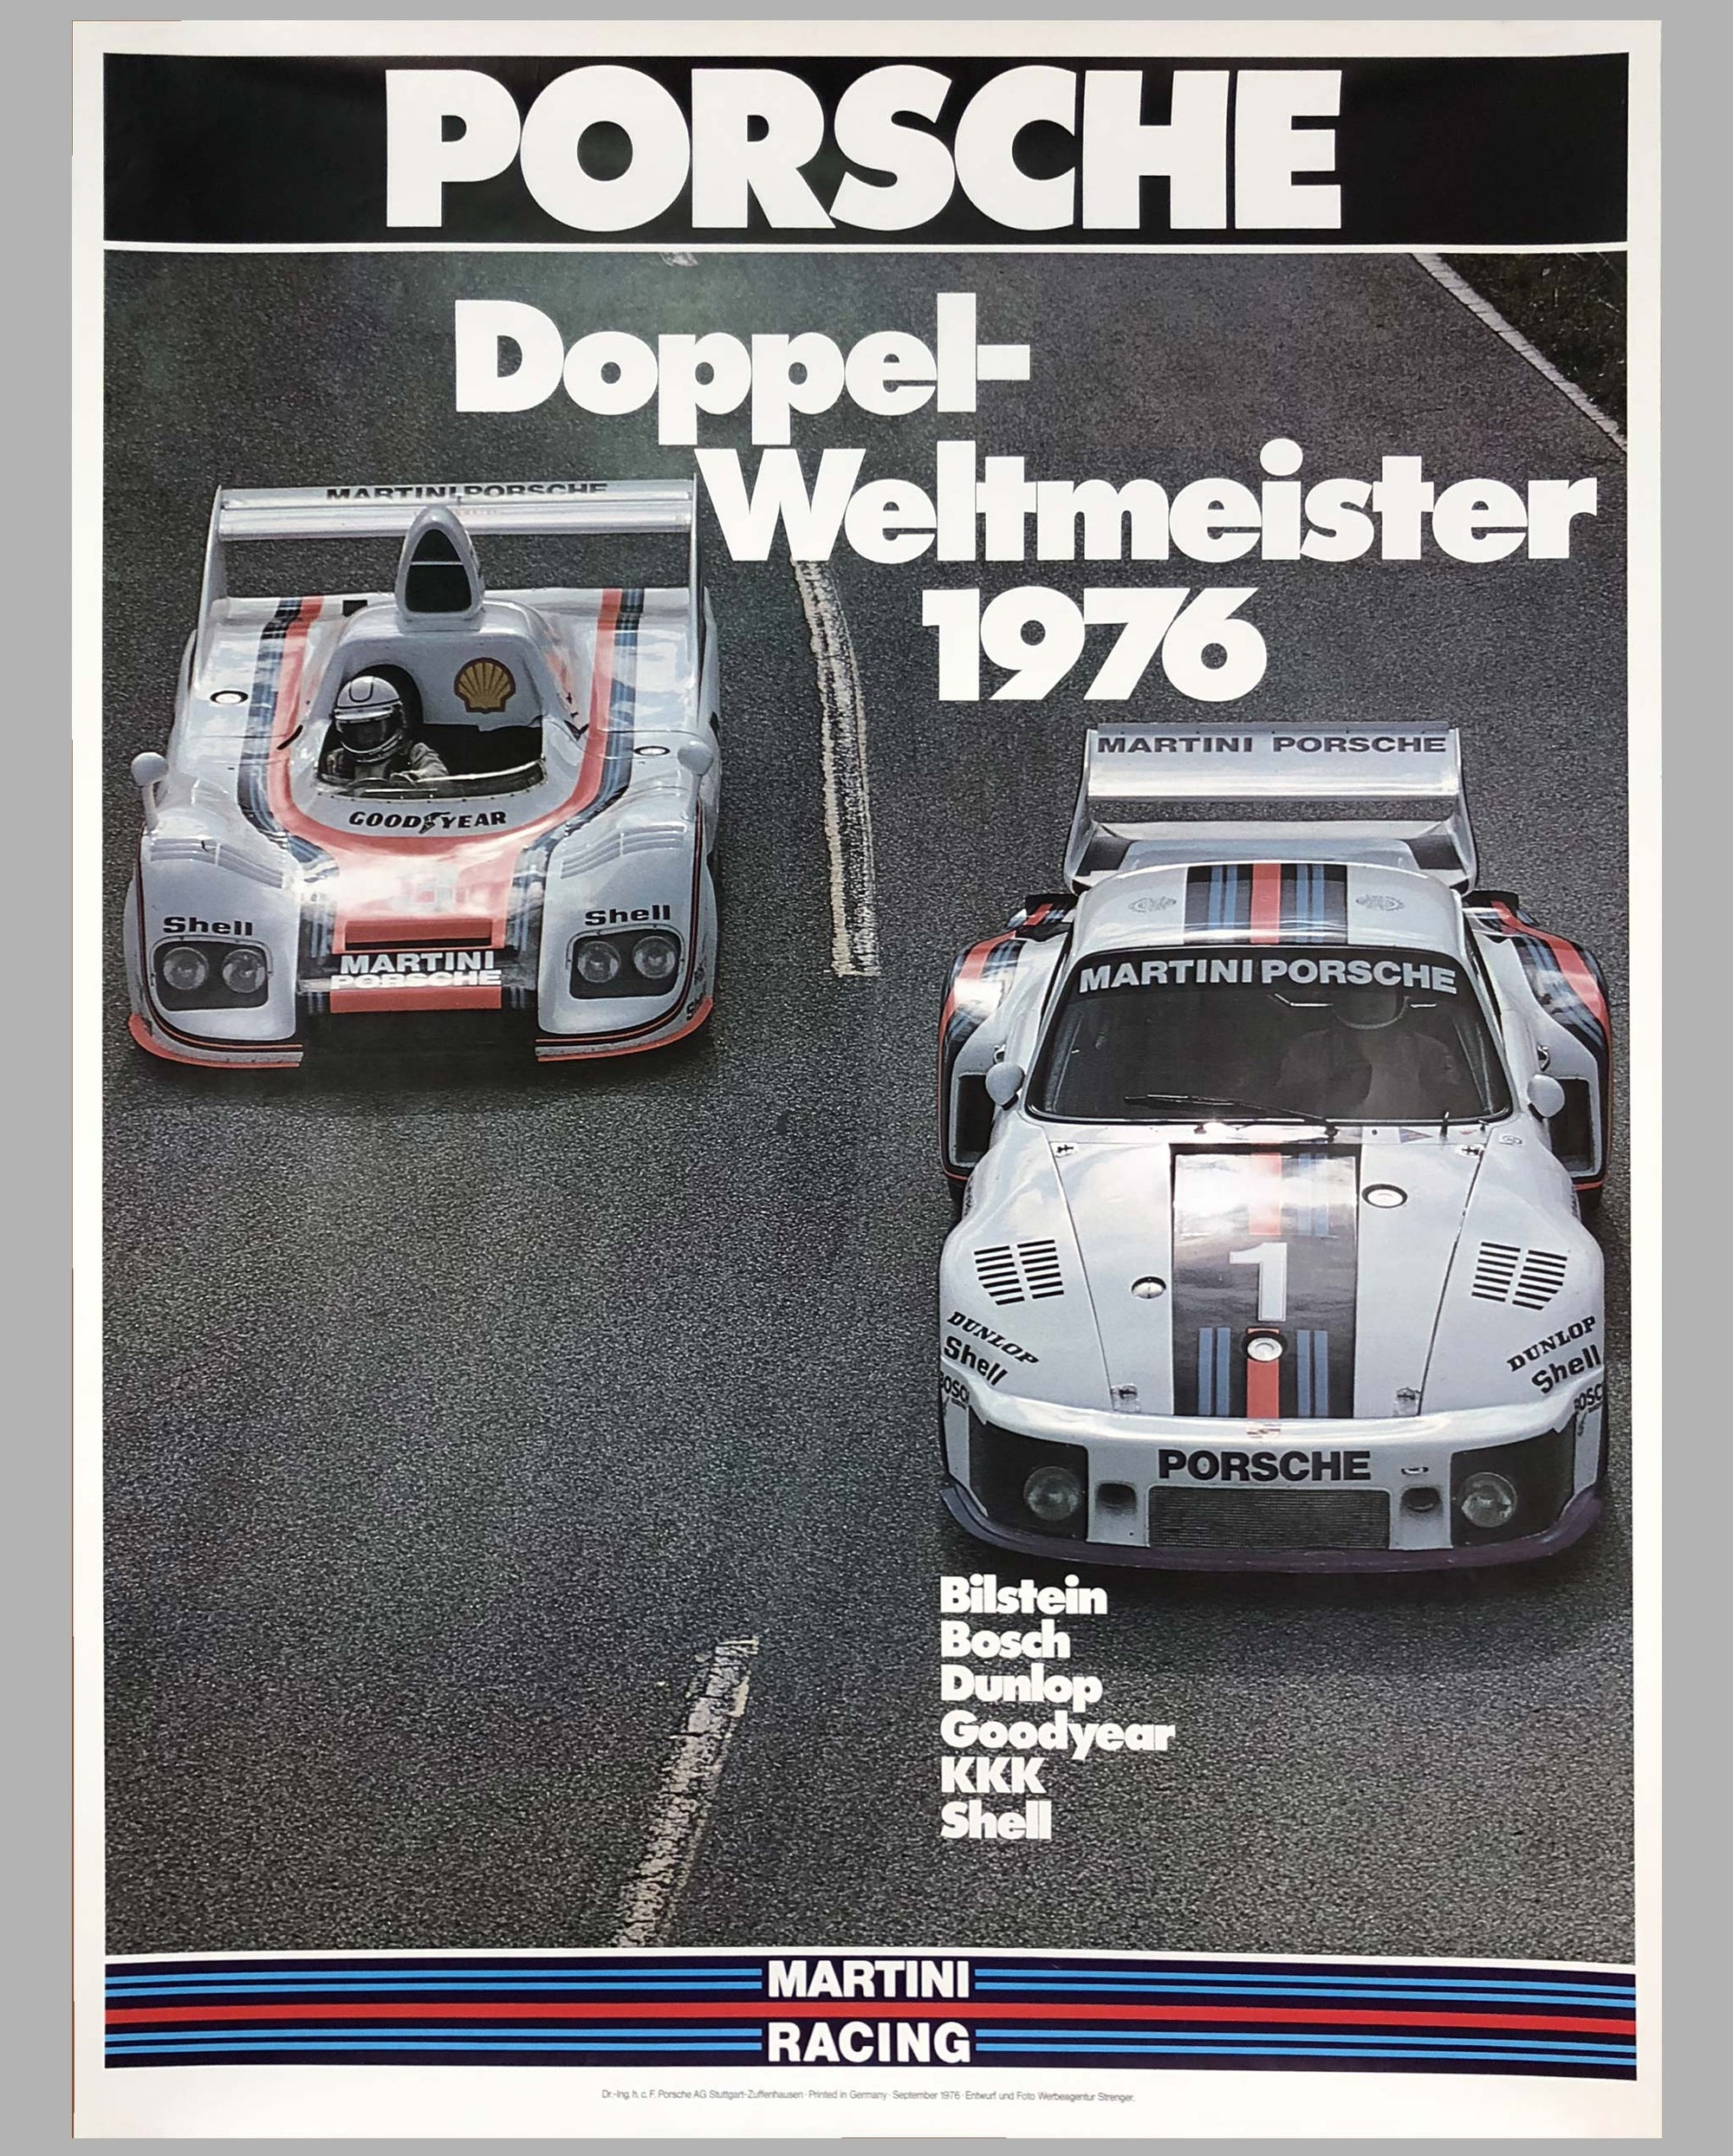 1976 Porsche Factory Victory Poster Double World Endurance Champions - $430.00